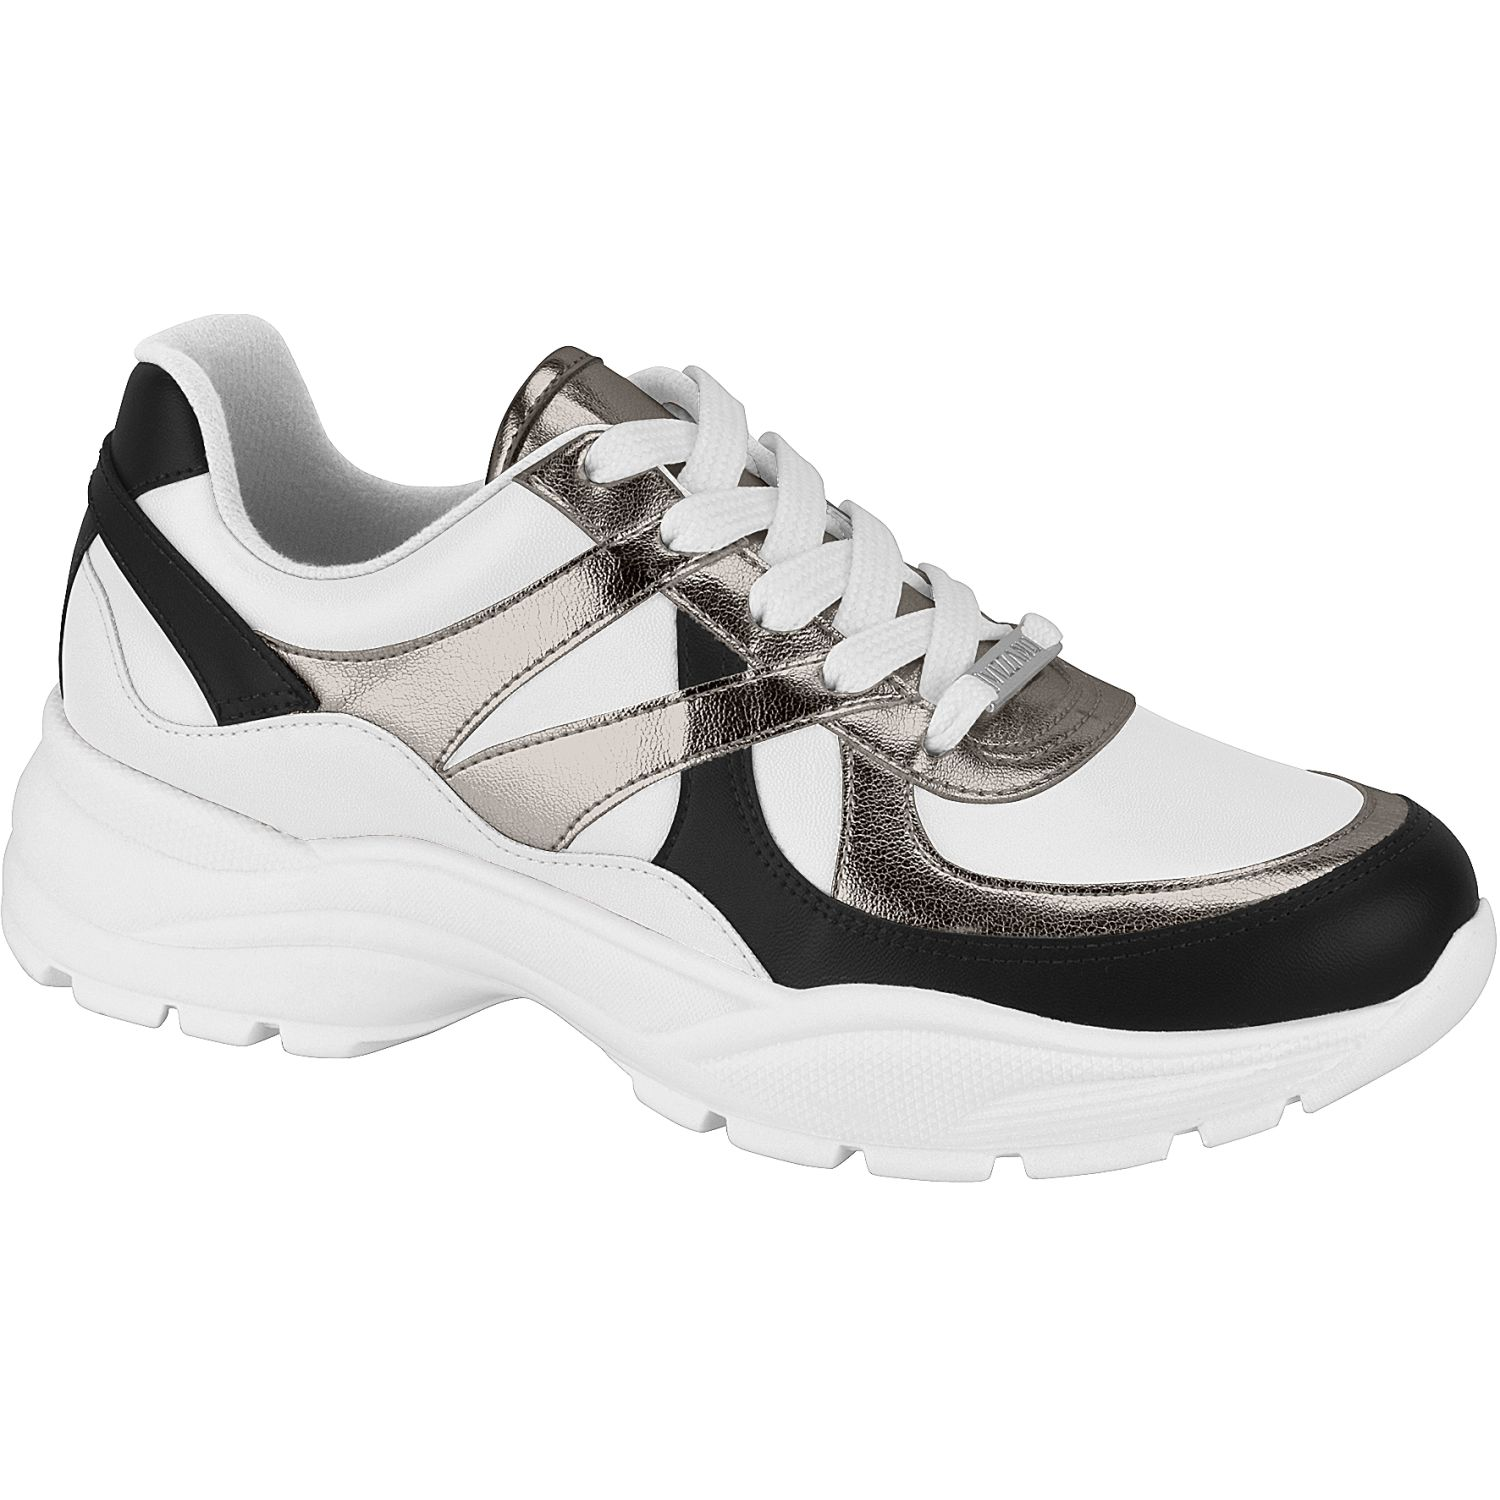 VIZZANO 1331.108.18533 blanco Blanco Zapatillas Fashion